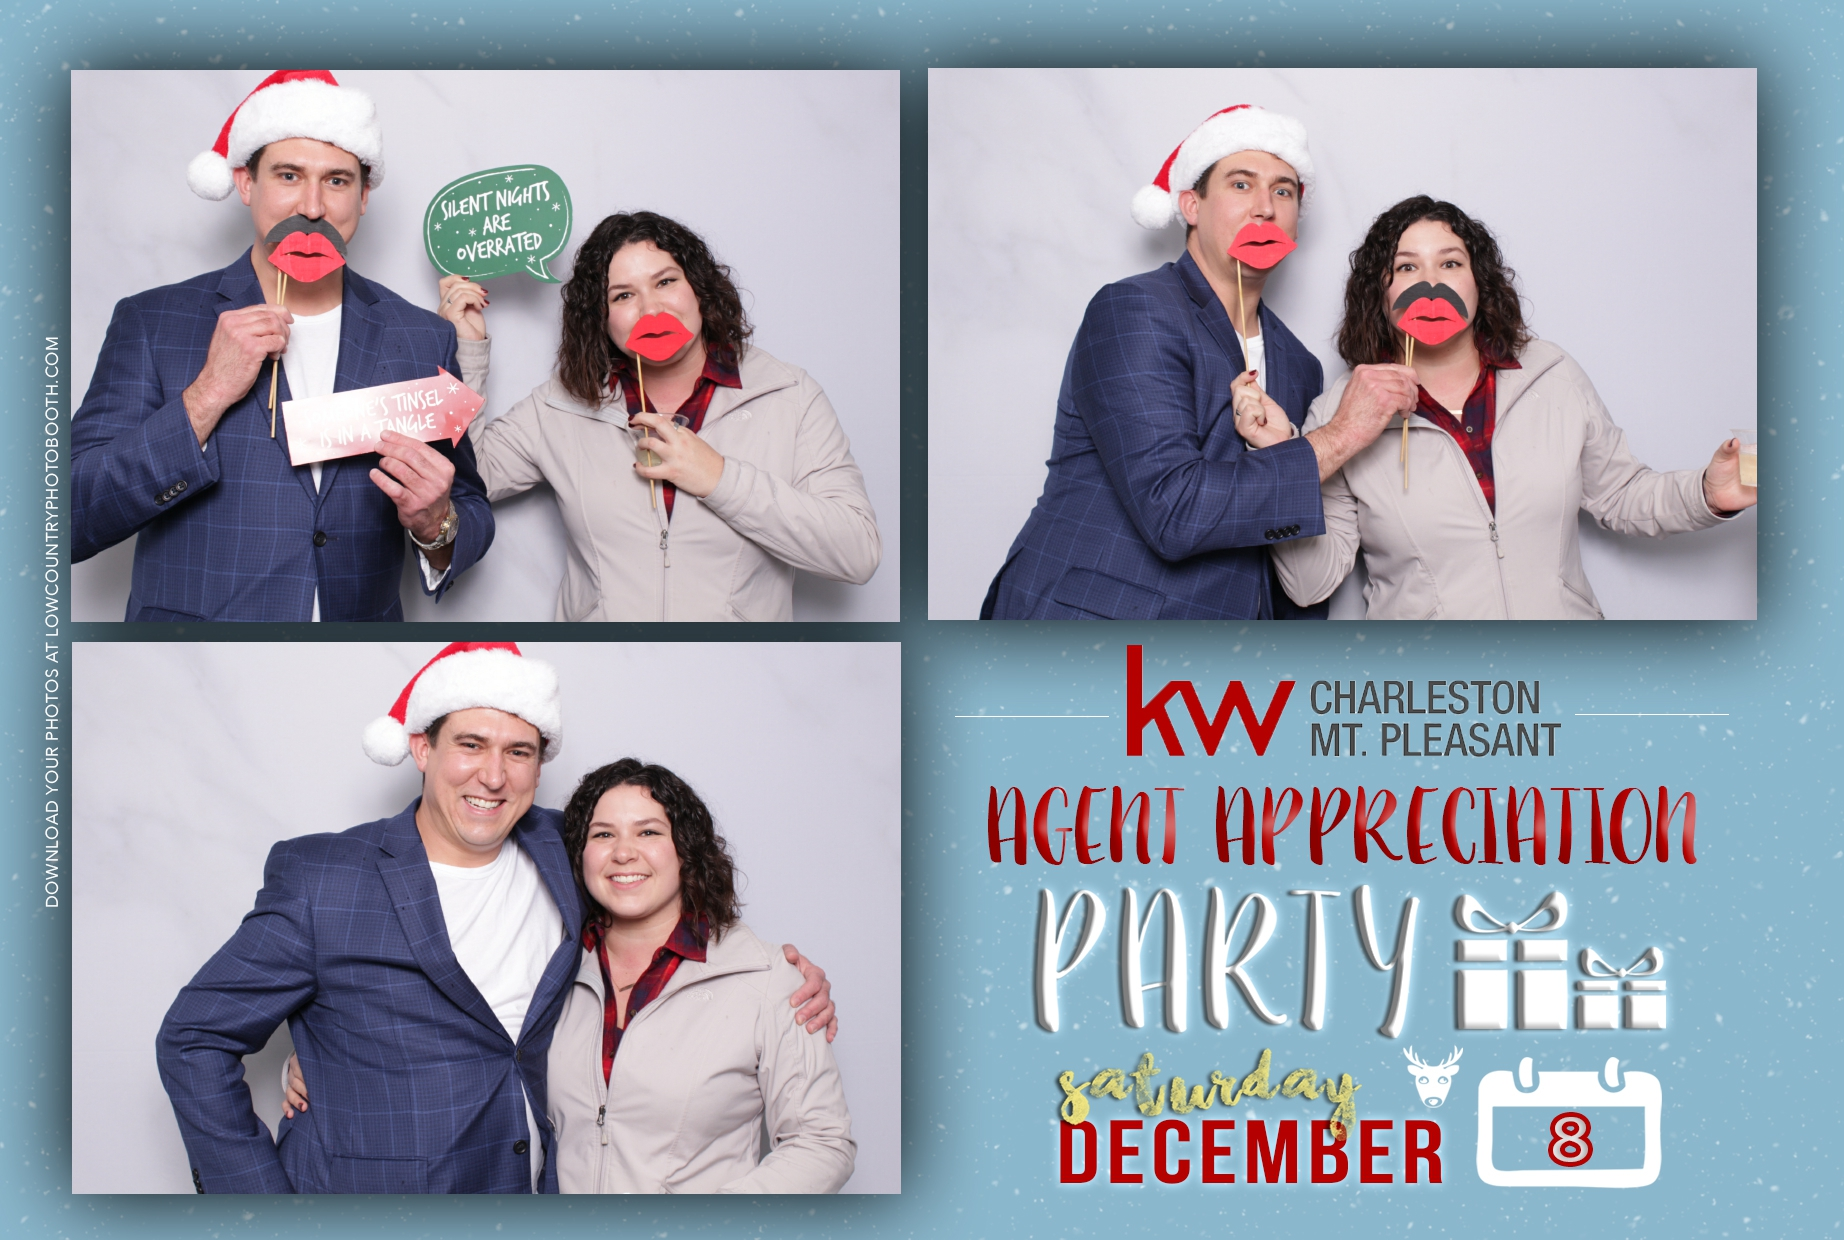 55KW Agent Appreciation Party Lowcountry Photo Booth custom.jpg